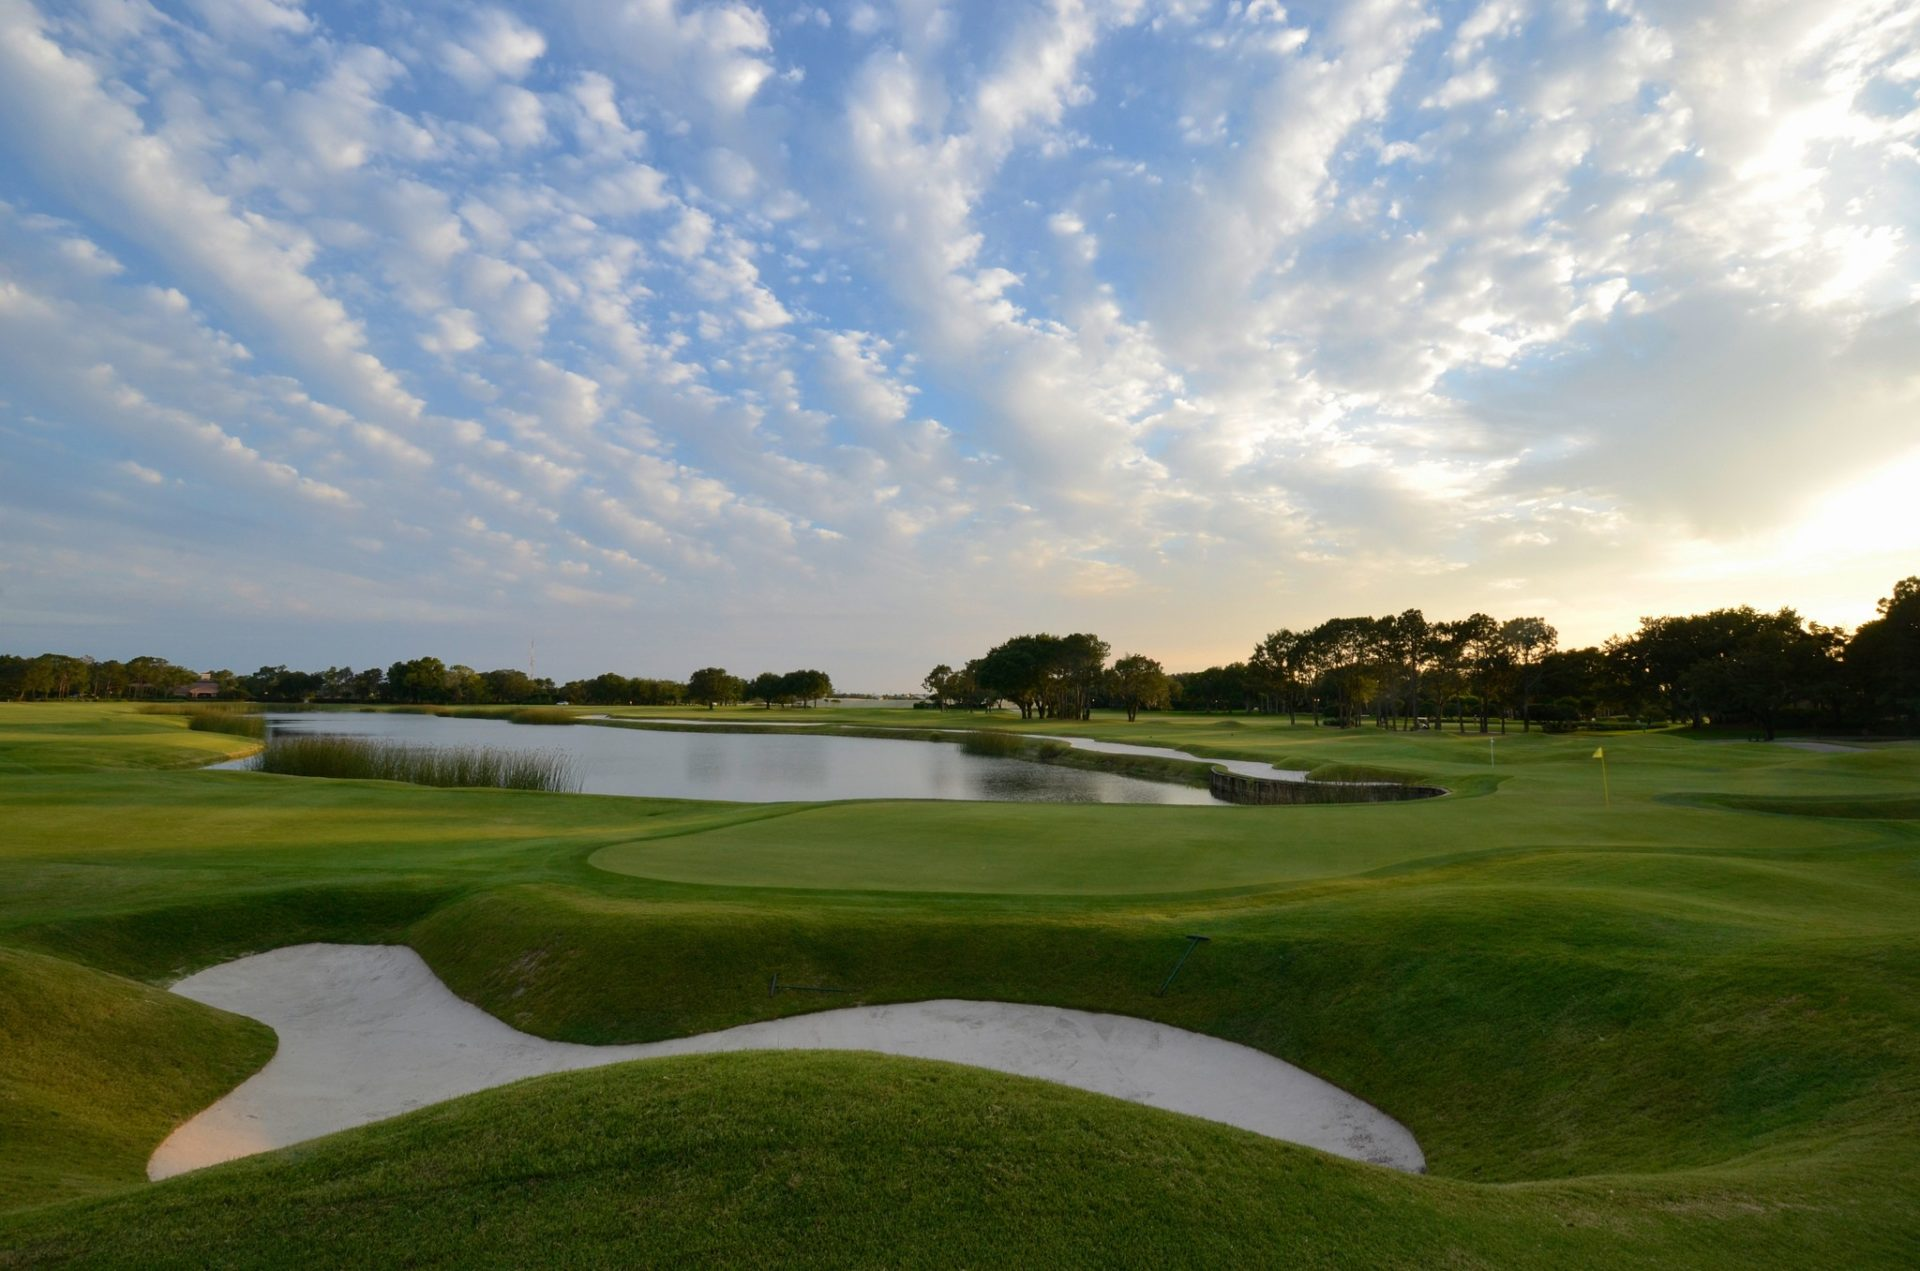 What to do in Orlando: Grand Cypress Golf Club. Photo by brent flanders via Flickr CC